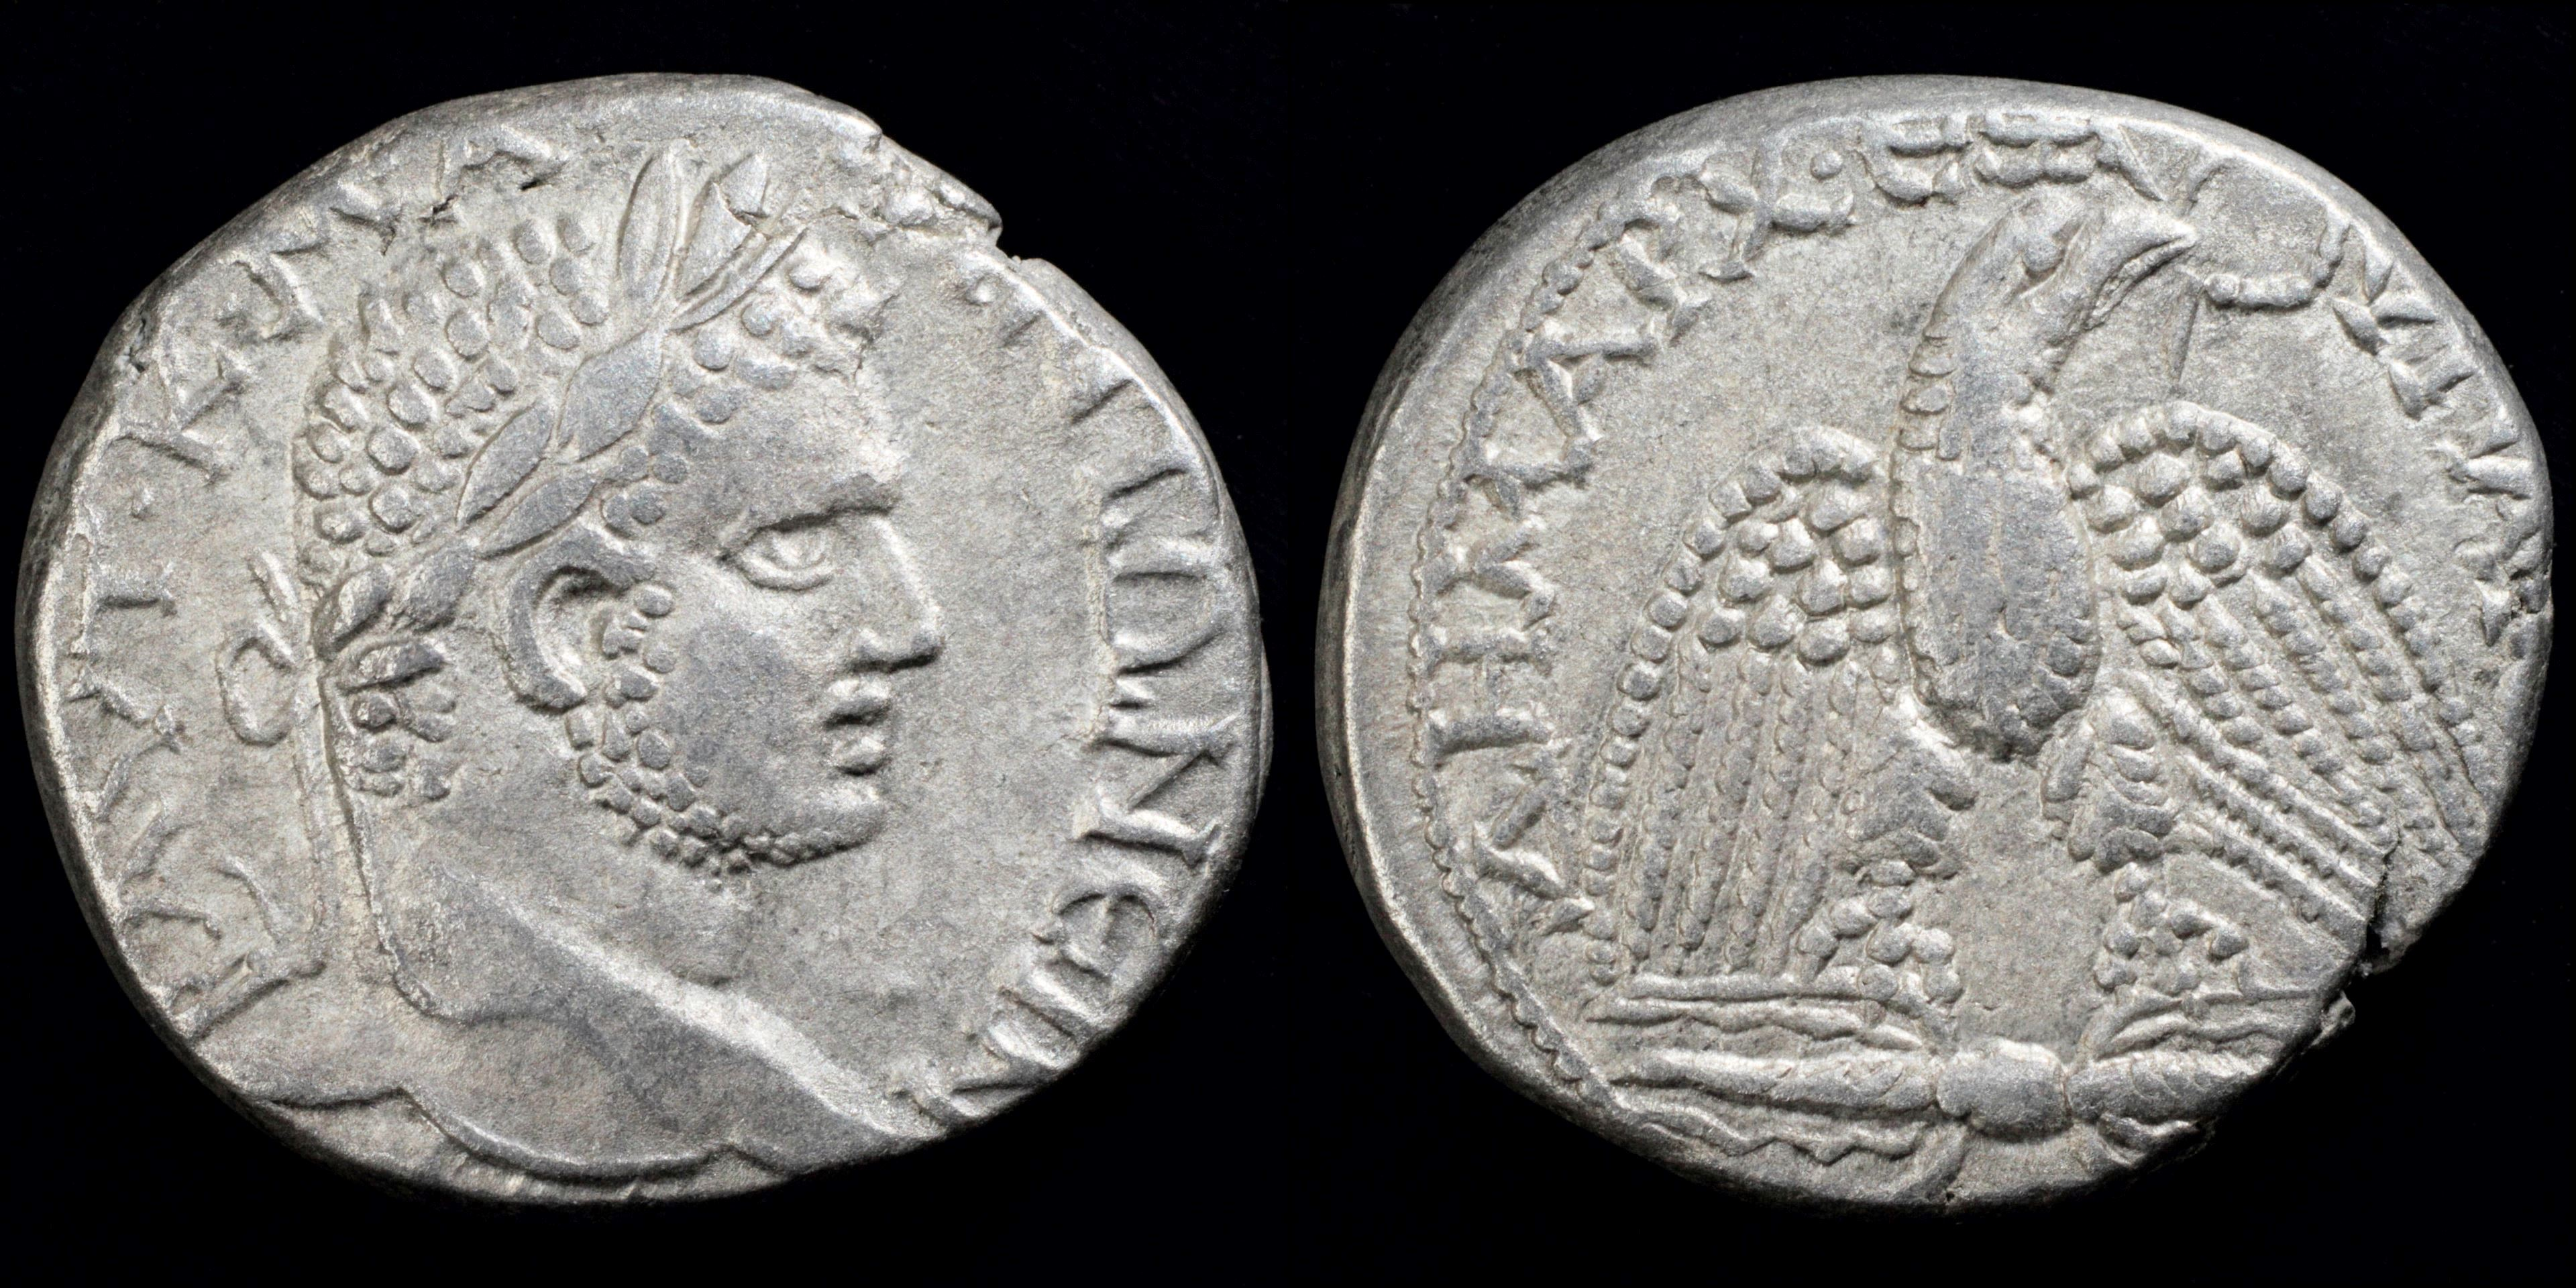 /Files/Images/Coinsite/CoinDB/Caracalla_-_Seleucia.jpg